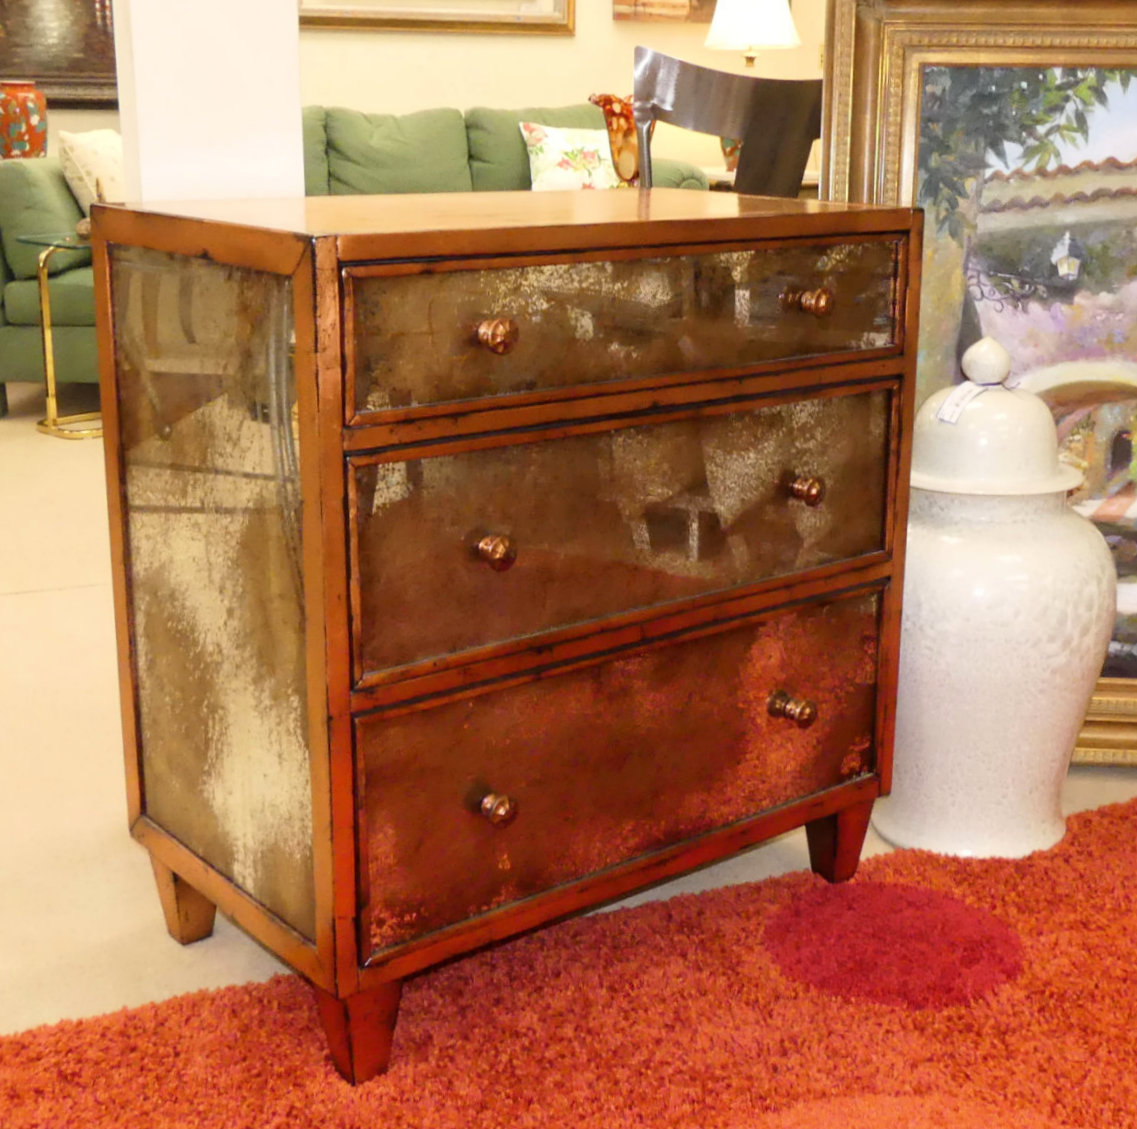 SOLD  CR Currin Mirrored Chest in Copper New - Showroom Display Mode